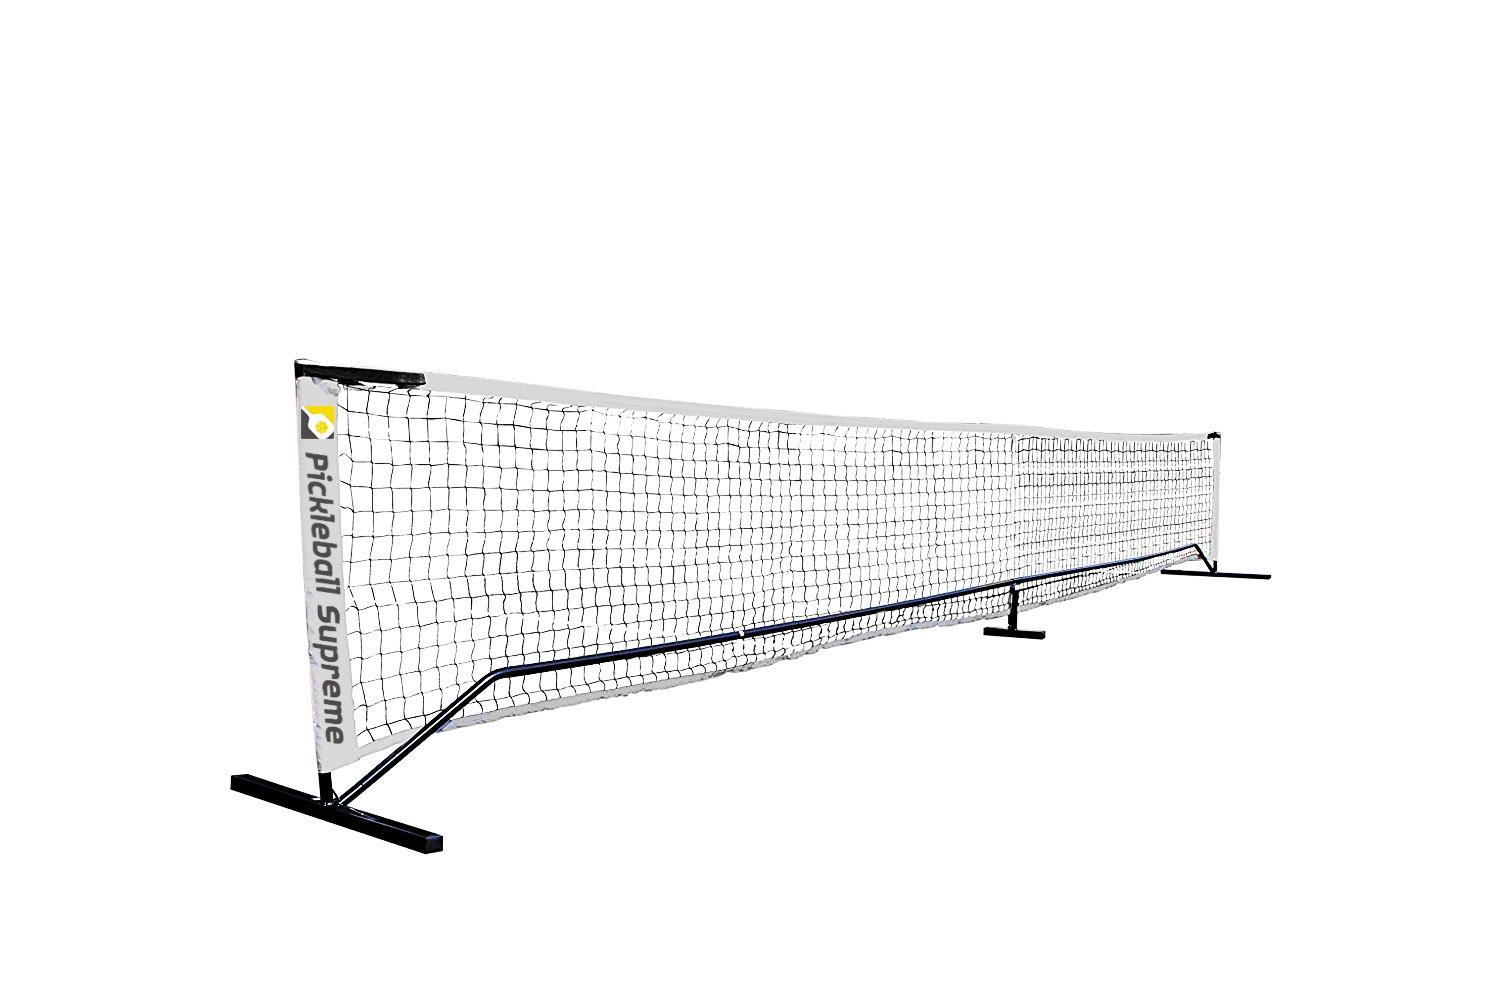 Complete Set: Pickleball Portable Net, Two Wood Paddles & Six Pickleballs by Spartan Athletic Co.